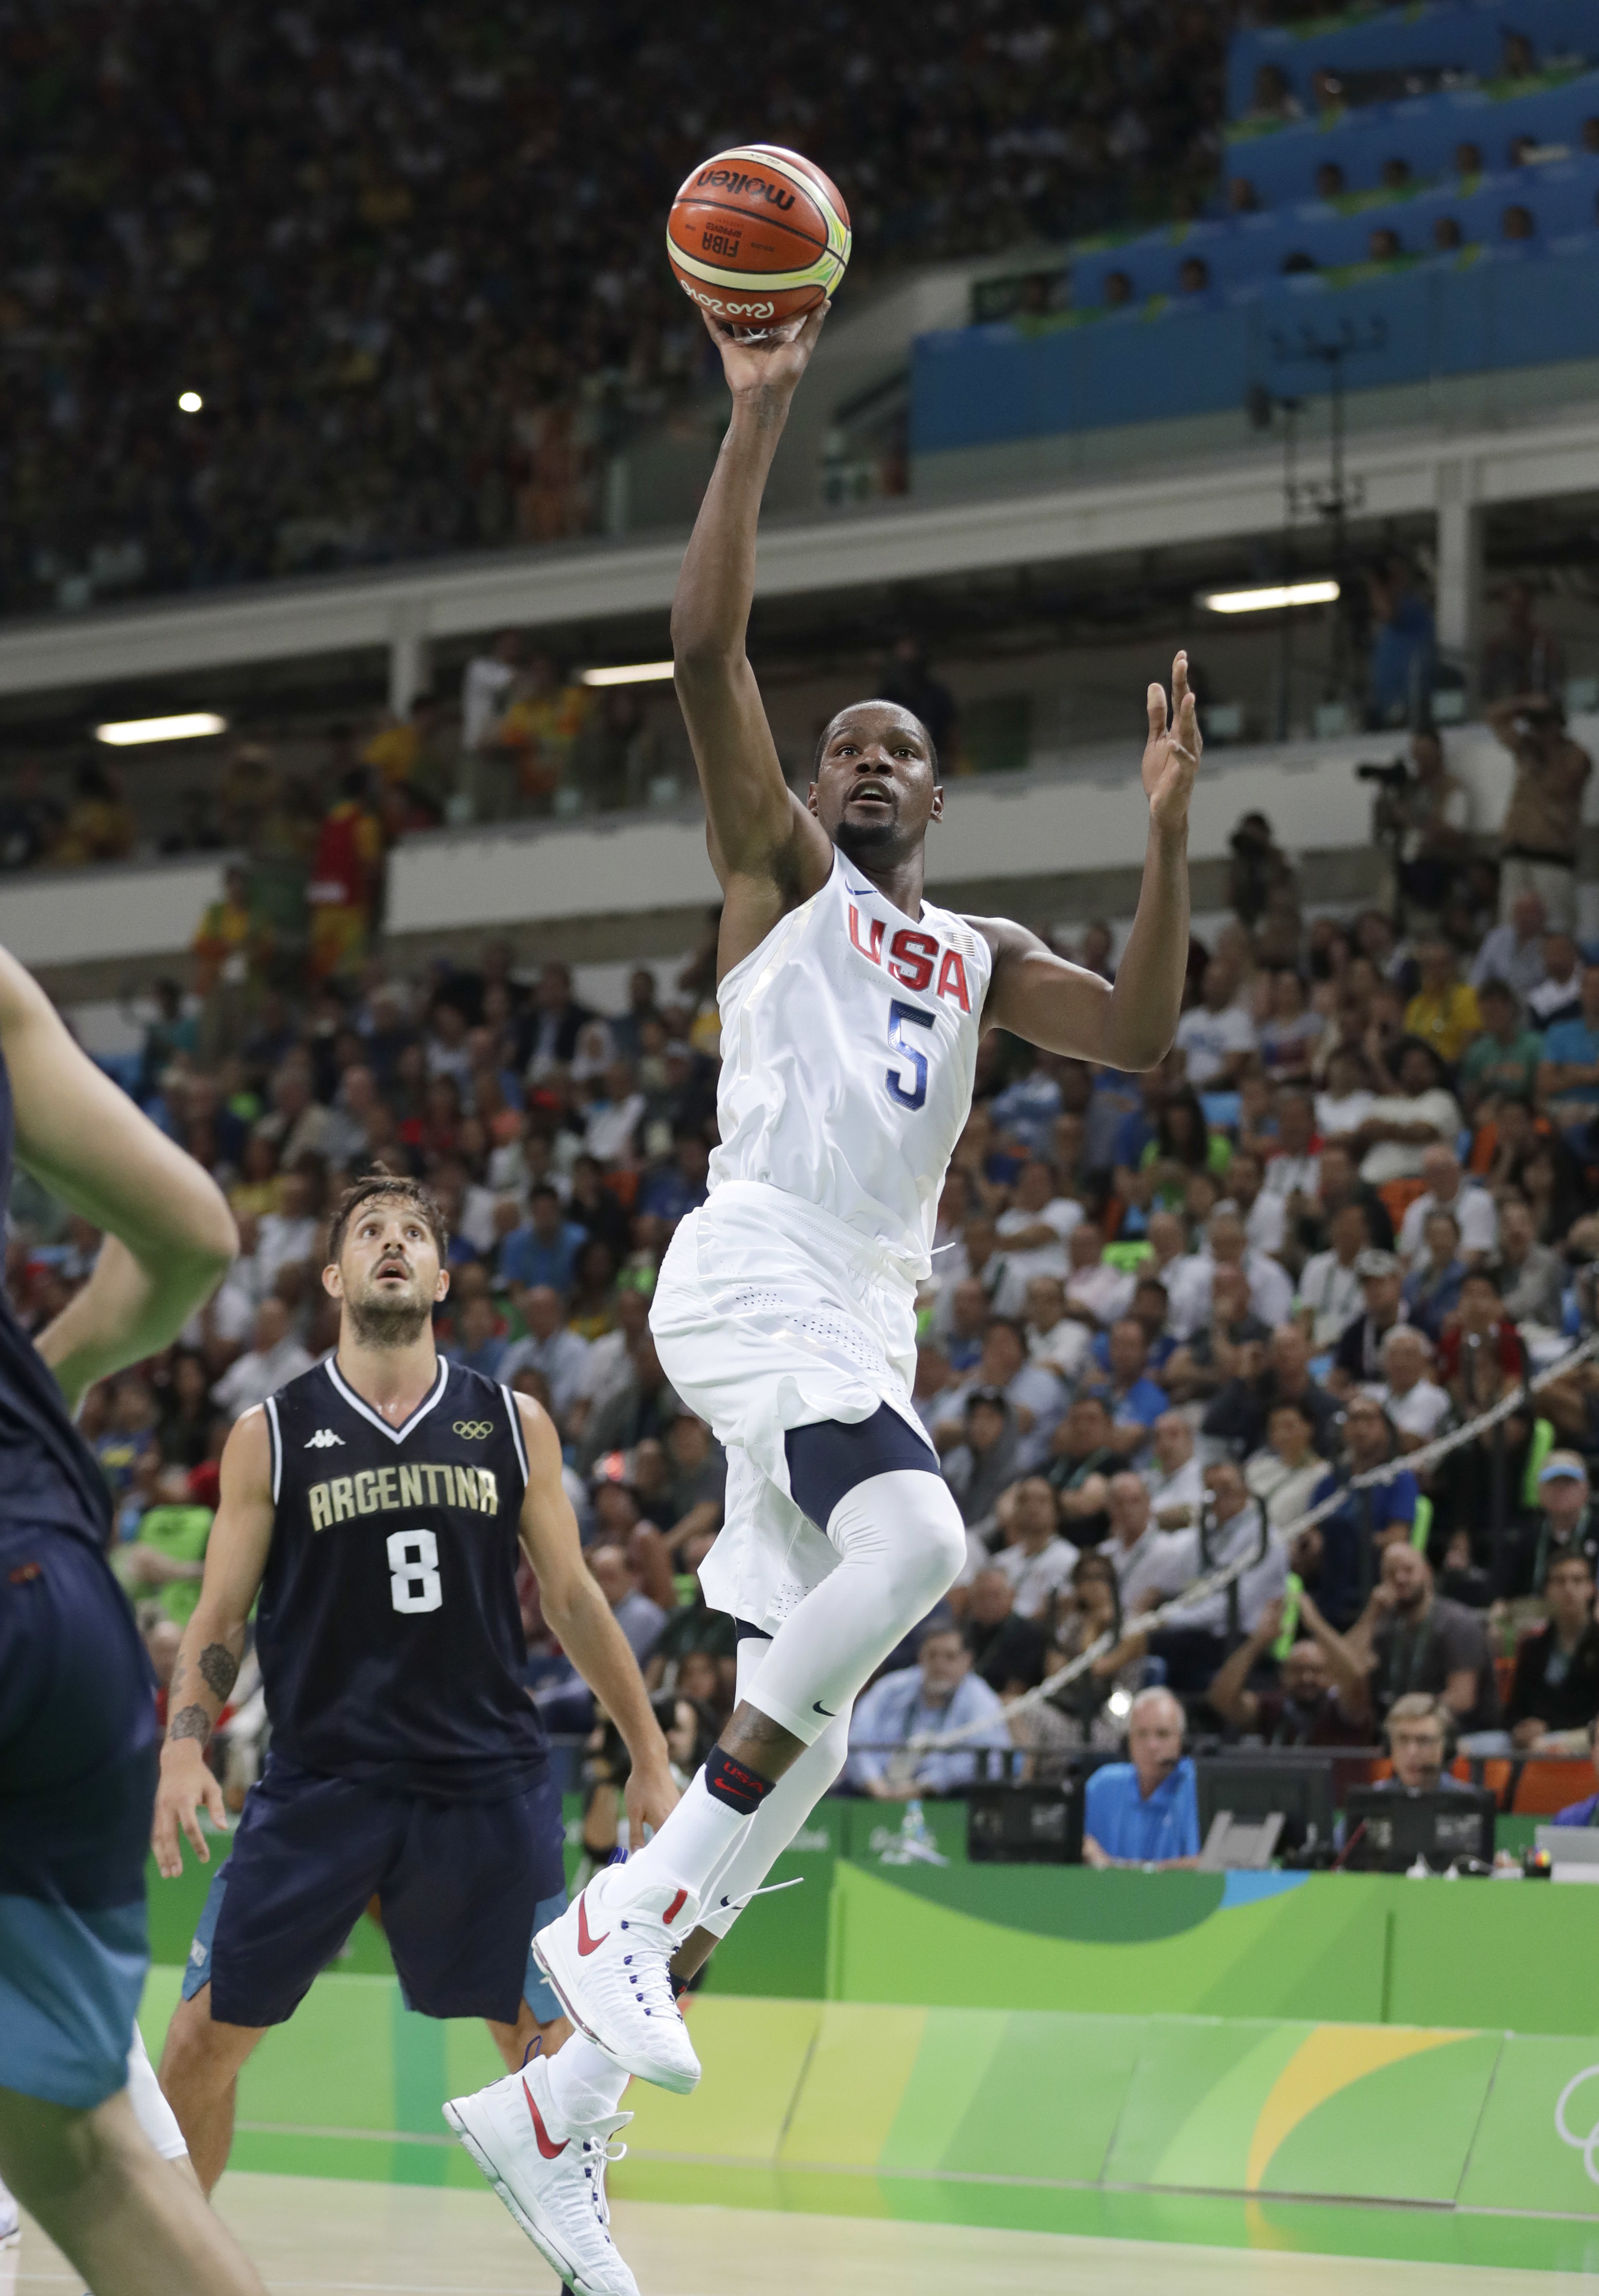 United States' Kevin Durant (5) shoots pat Argentina's Nicolas Laprovittola (8) during a men's quarterfinal round basketball game at the 2016 Summer Olympics in Rio de Janeiro, Brazil, Wednesday, Aug. 17, 2016. (AP Photo/Eric Gay)